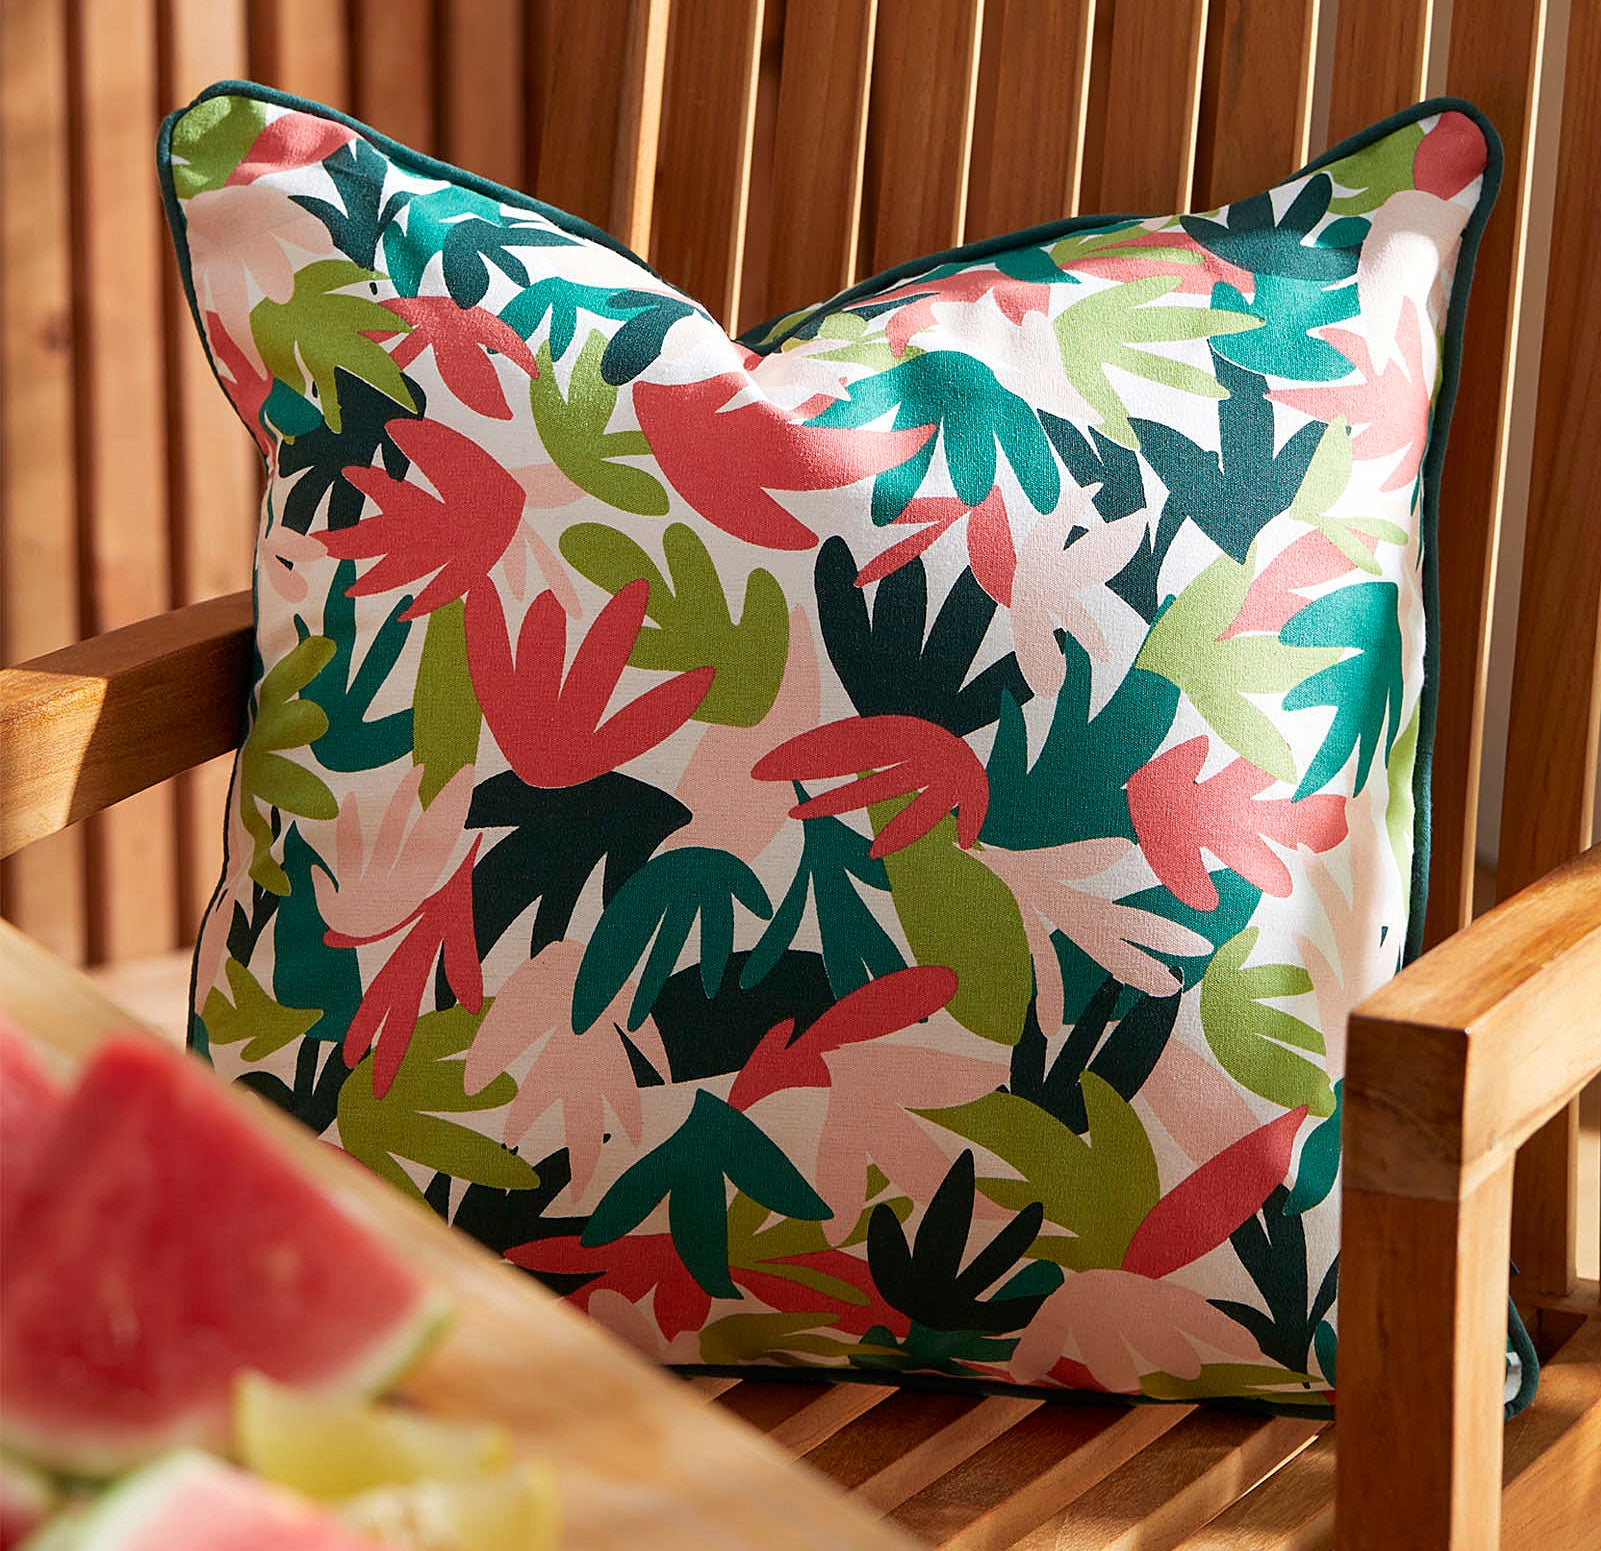 a vibrant patterned pillow on a chair